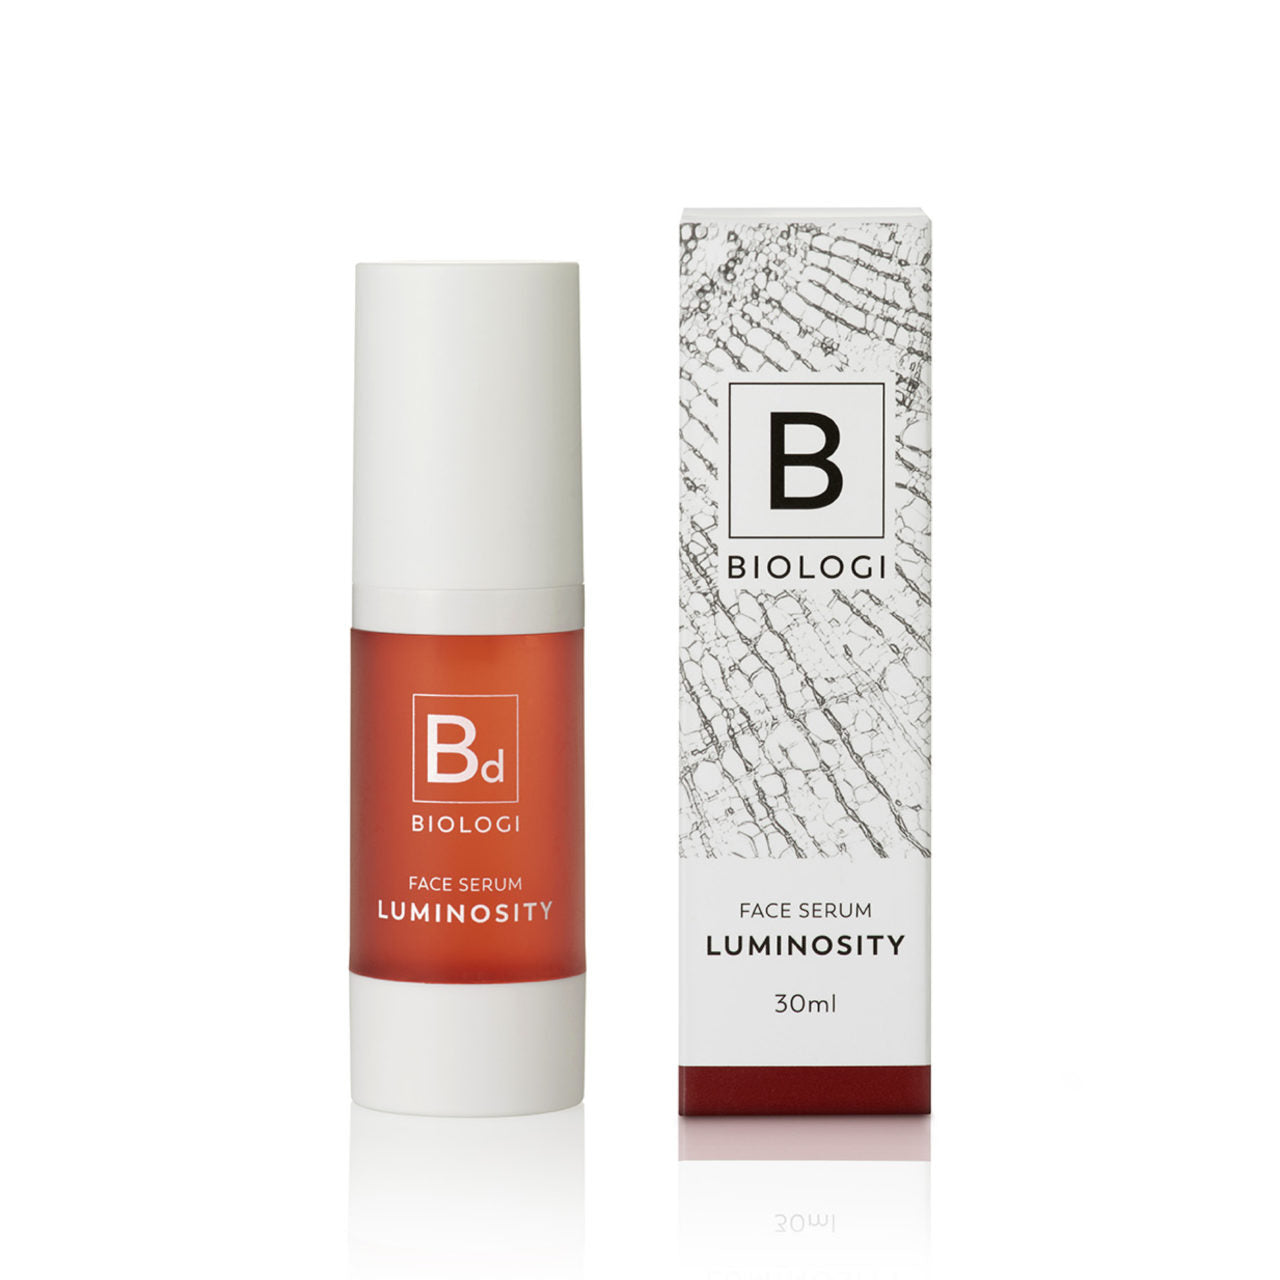 Biologi, face serum, Biologi Nederland, Biologi x Nourished.nl, Nourished.nl, BF biologi Body Serum, Bd biologi Face Serum, Bk biologi Eye Serum, Bl nourish lip serum, biologi europe, 100% active skincare